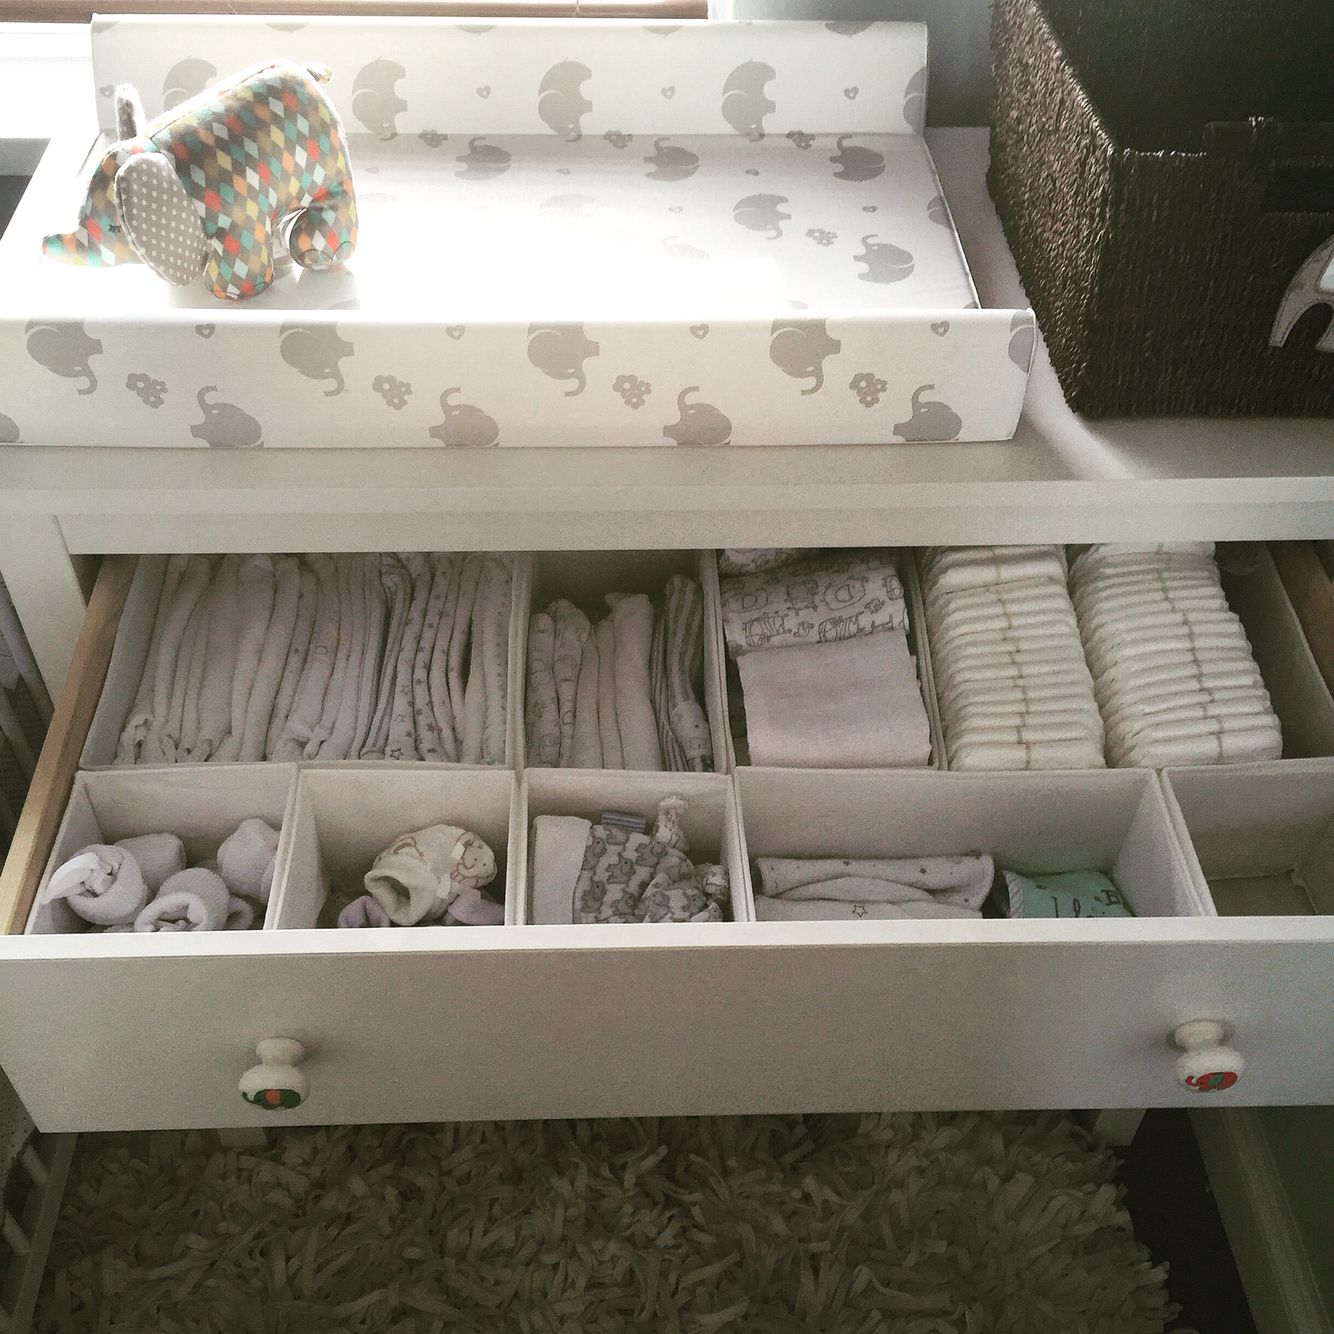 Organisation Station Ikea Skubb Boxes Perfect For Organising